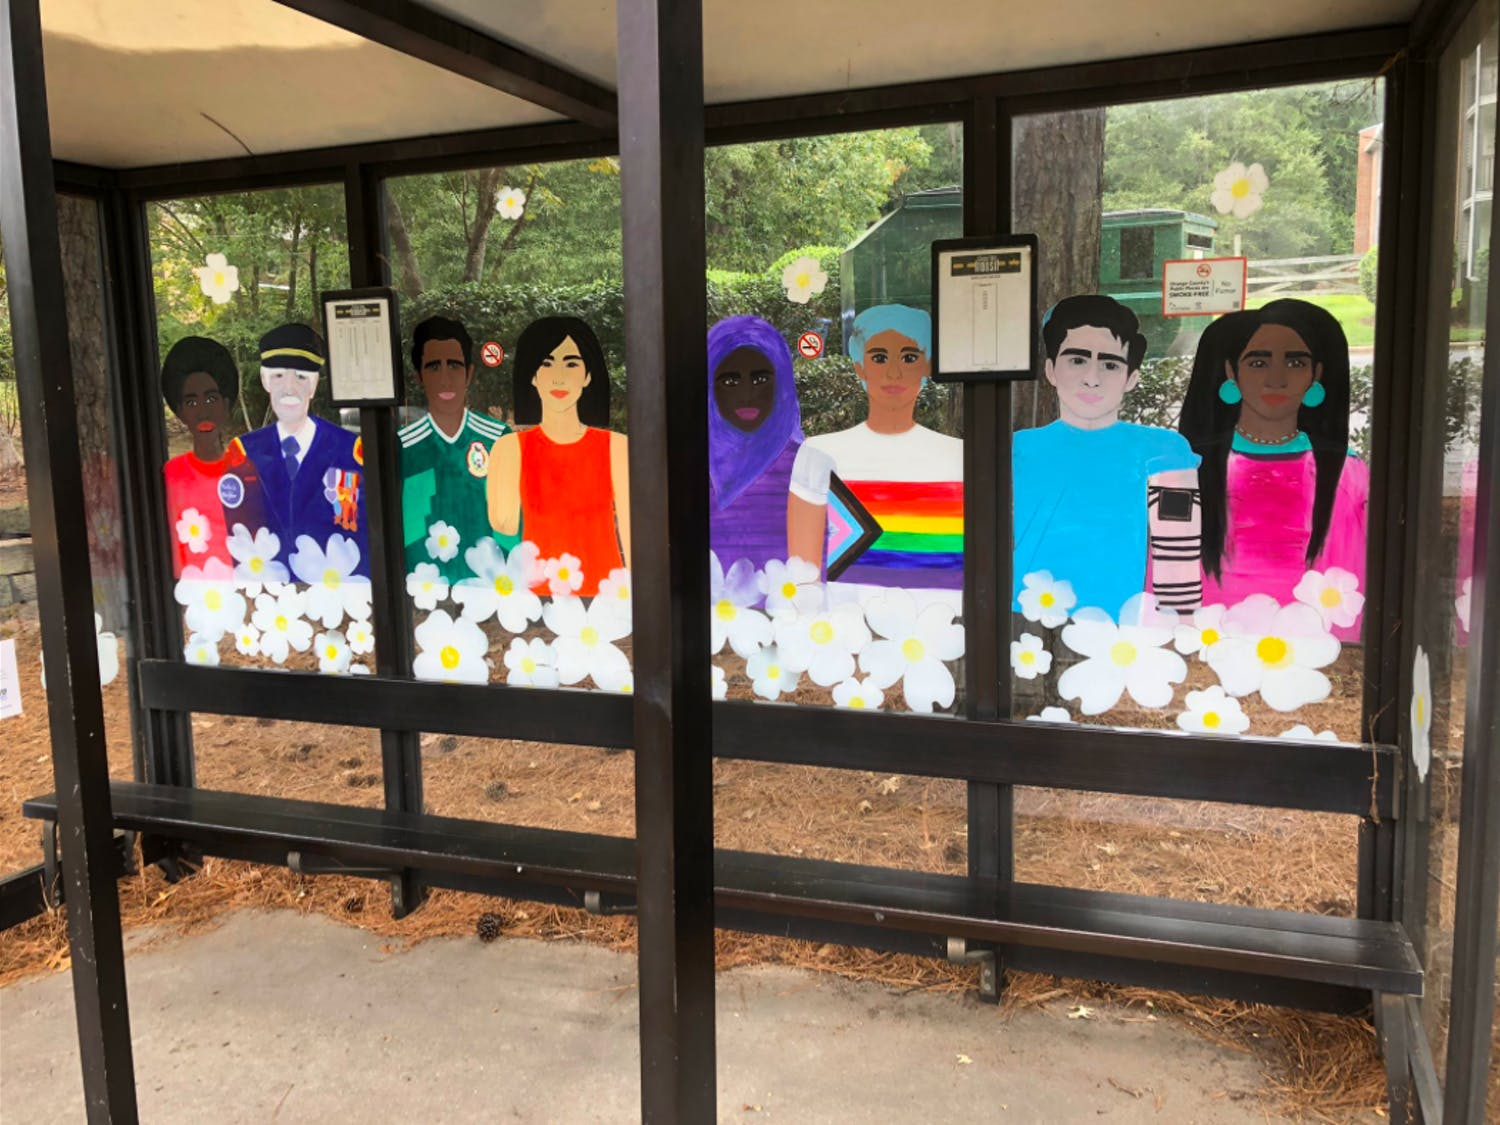 One of the bus shelters in the decorated as part of the Arts + Transit's Artistic Bus Shelter opportunity. Photo courtesy of Brian Litchfield.